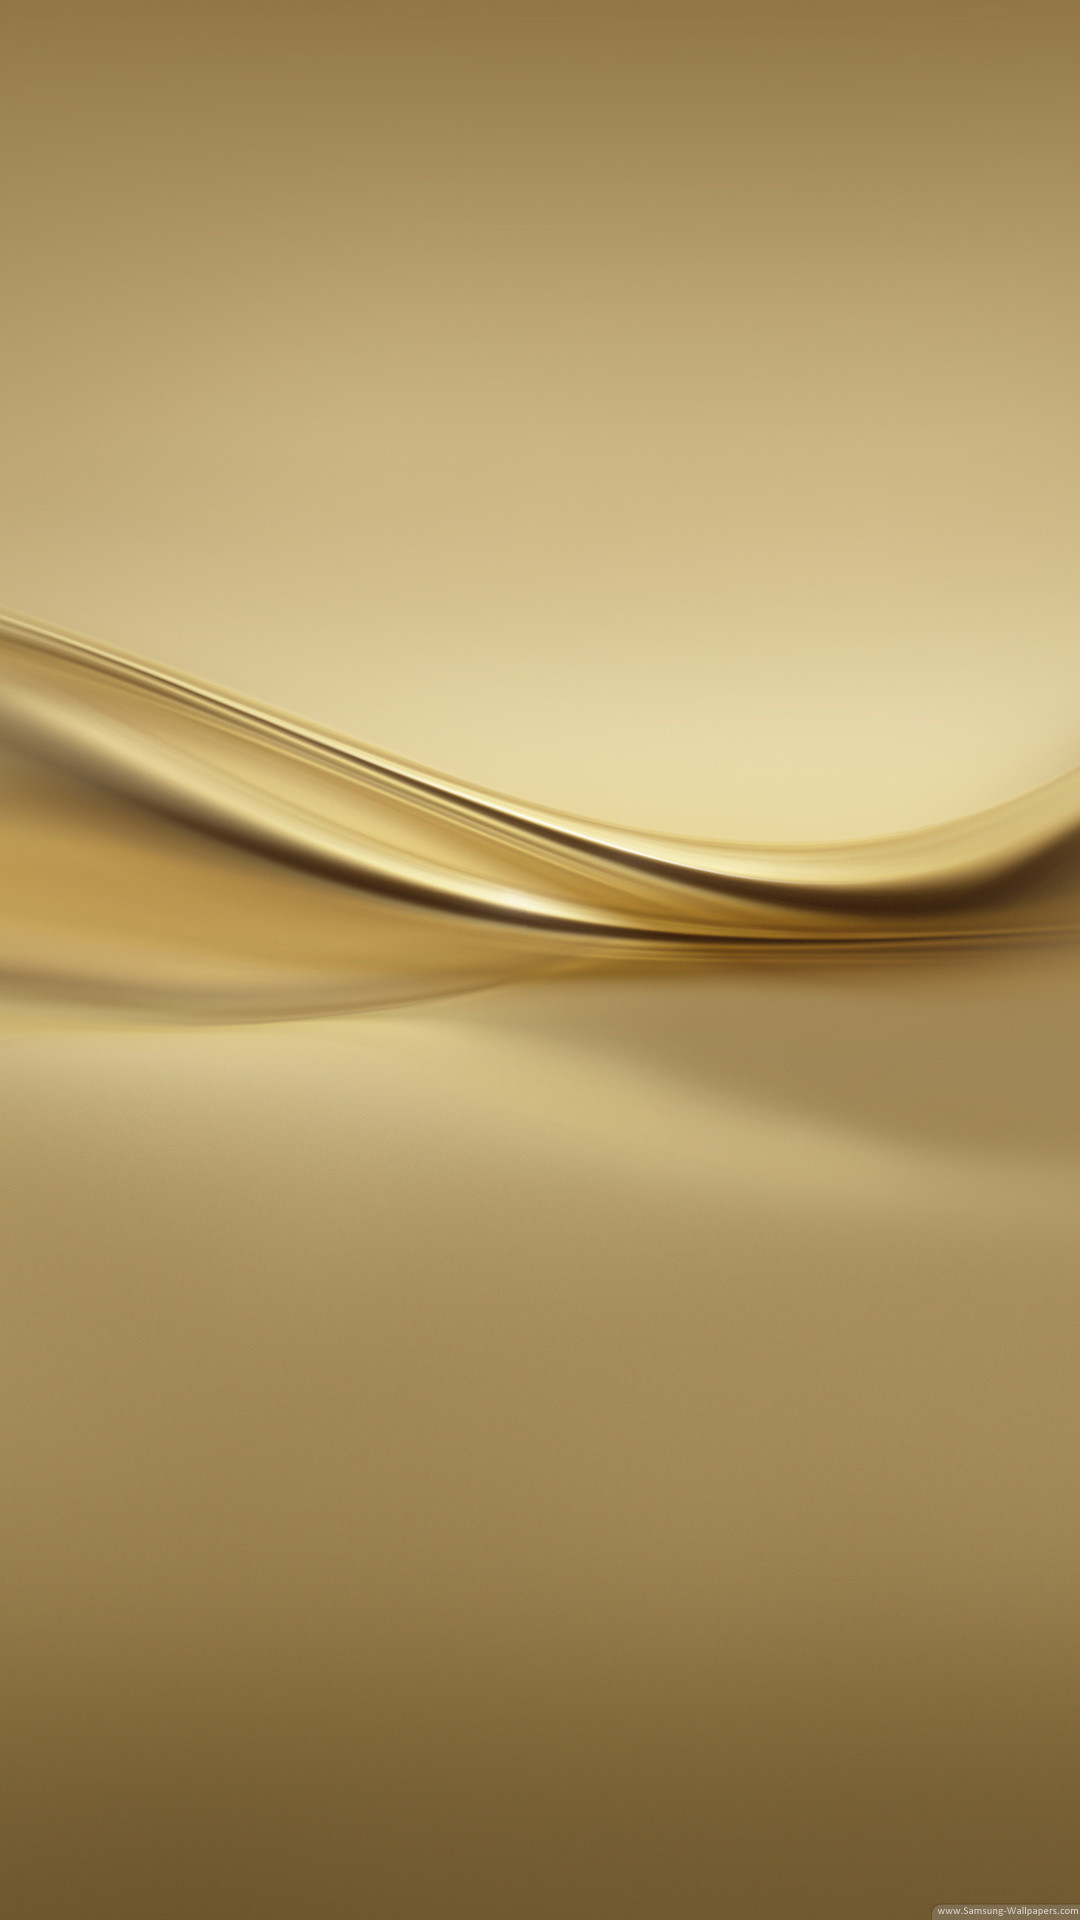 1080x1920 Golden Background Stock Samsung Galaxy S6 Wallpapers HD Download 1920x1080 Embed Code